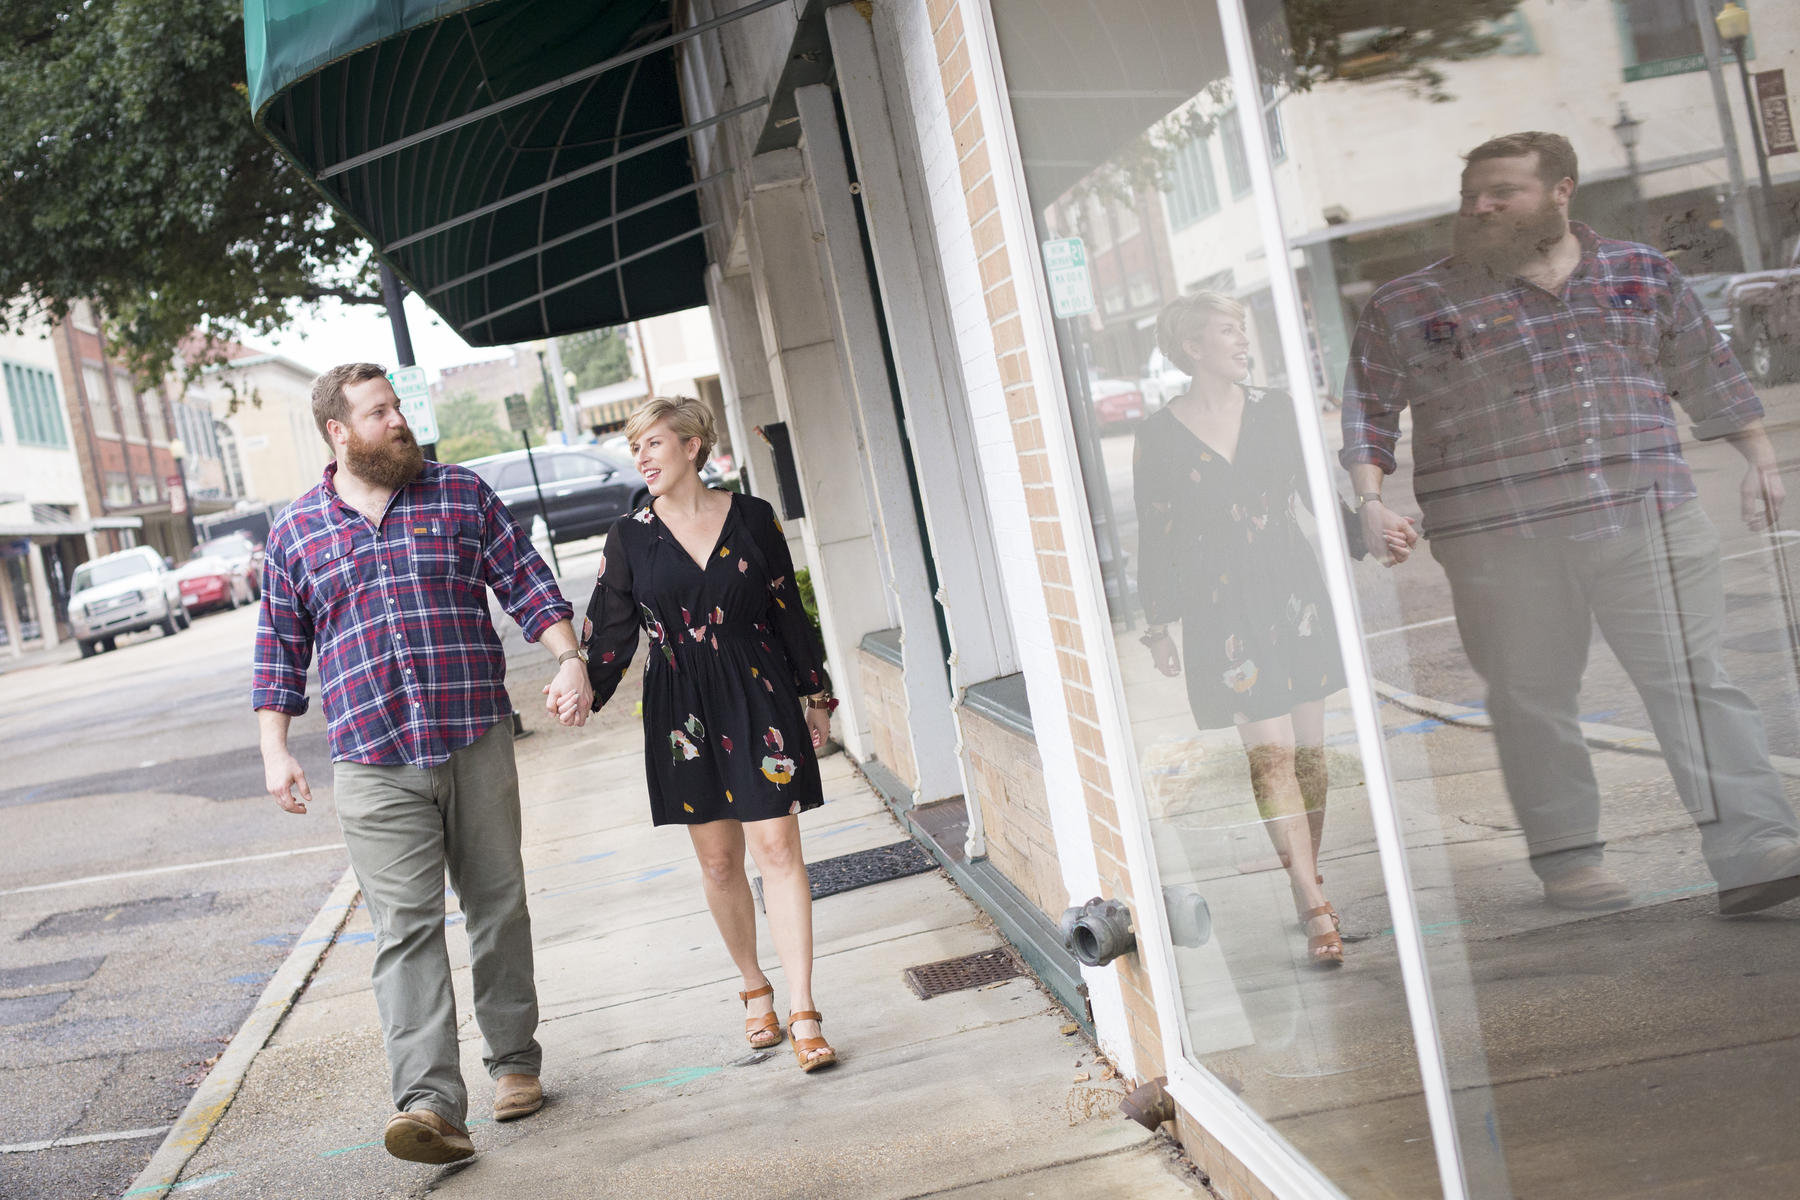 HGTV's 'Home Town' stars Ben and Erin Napier Welcome Their First Child